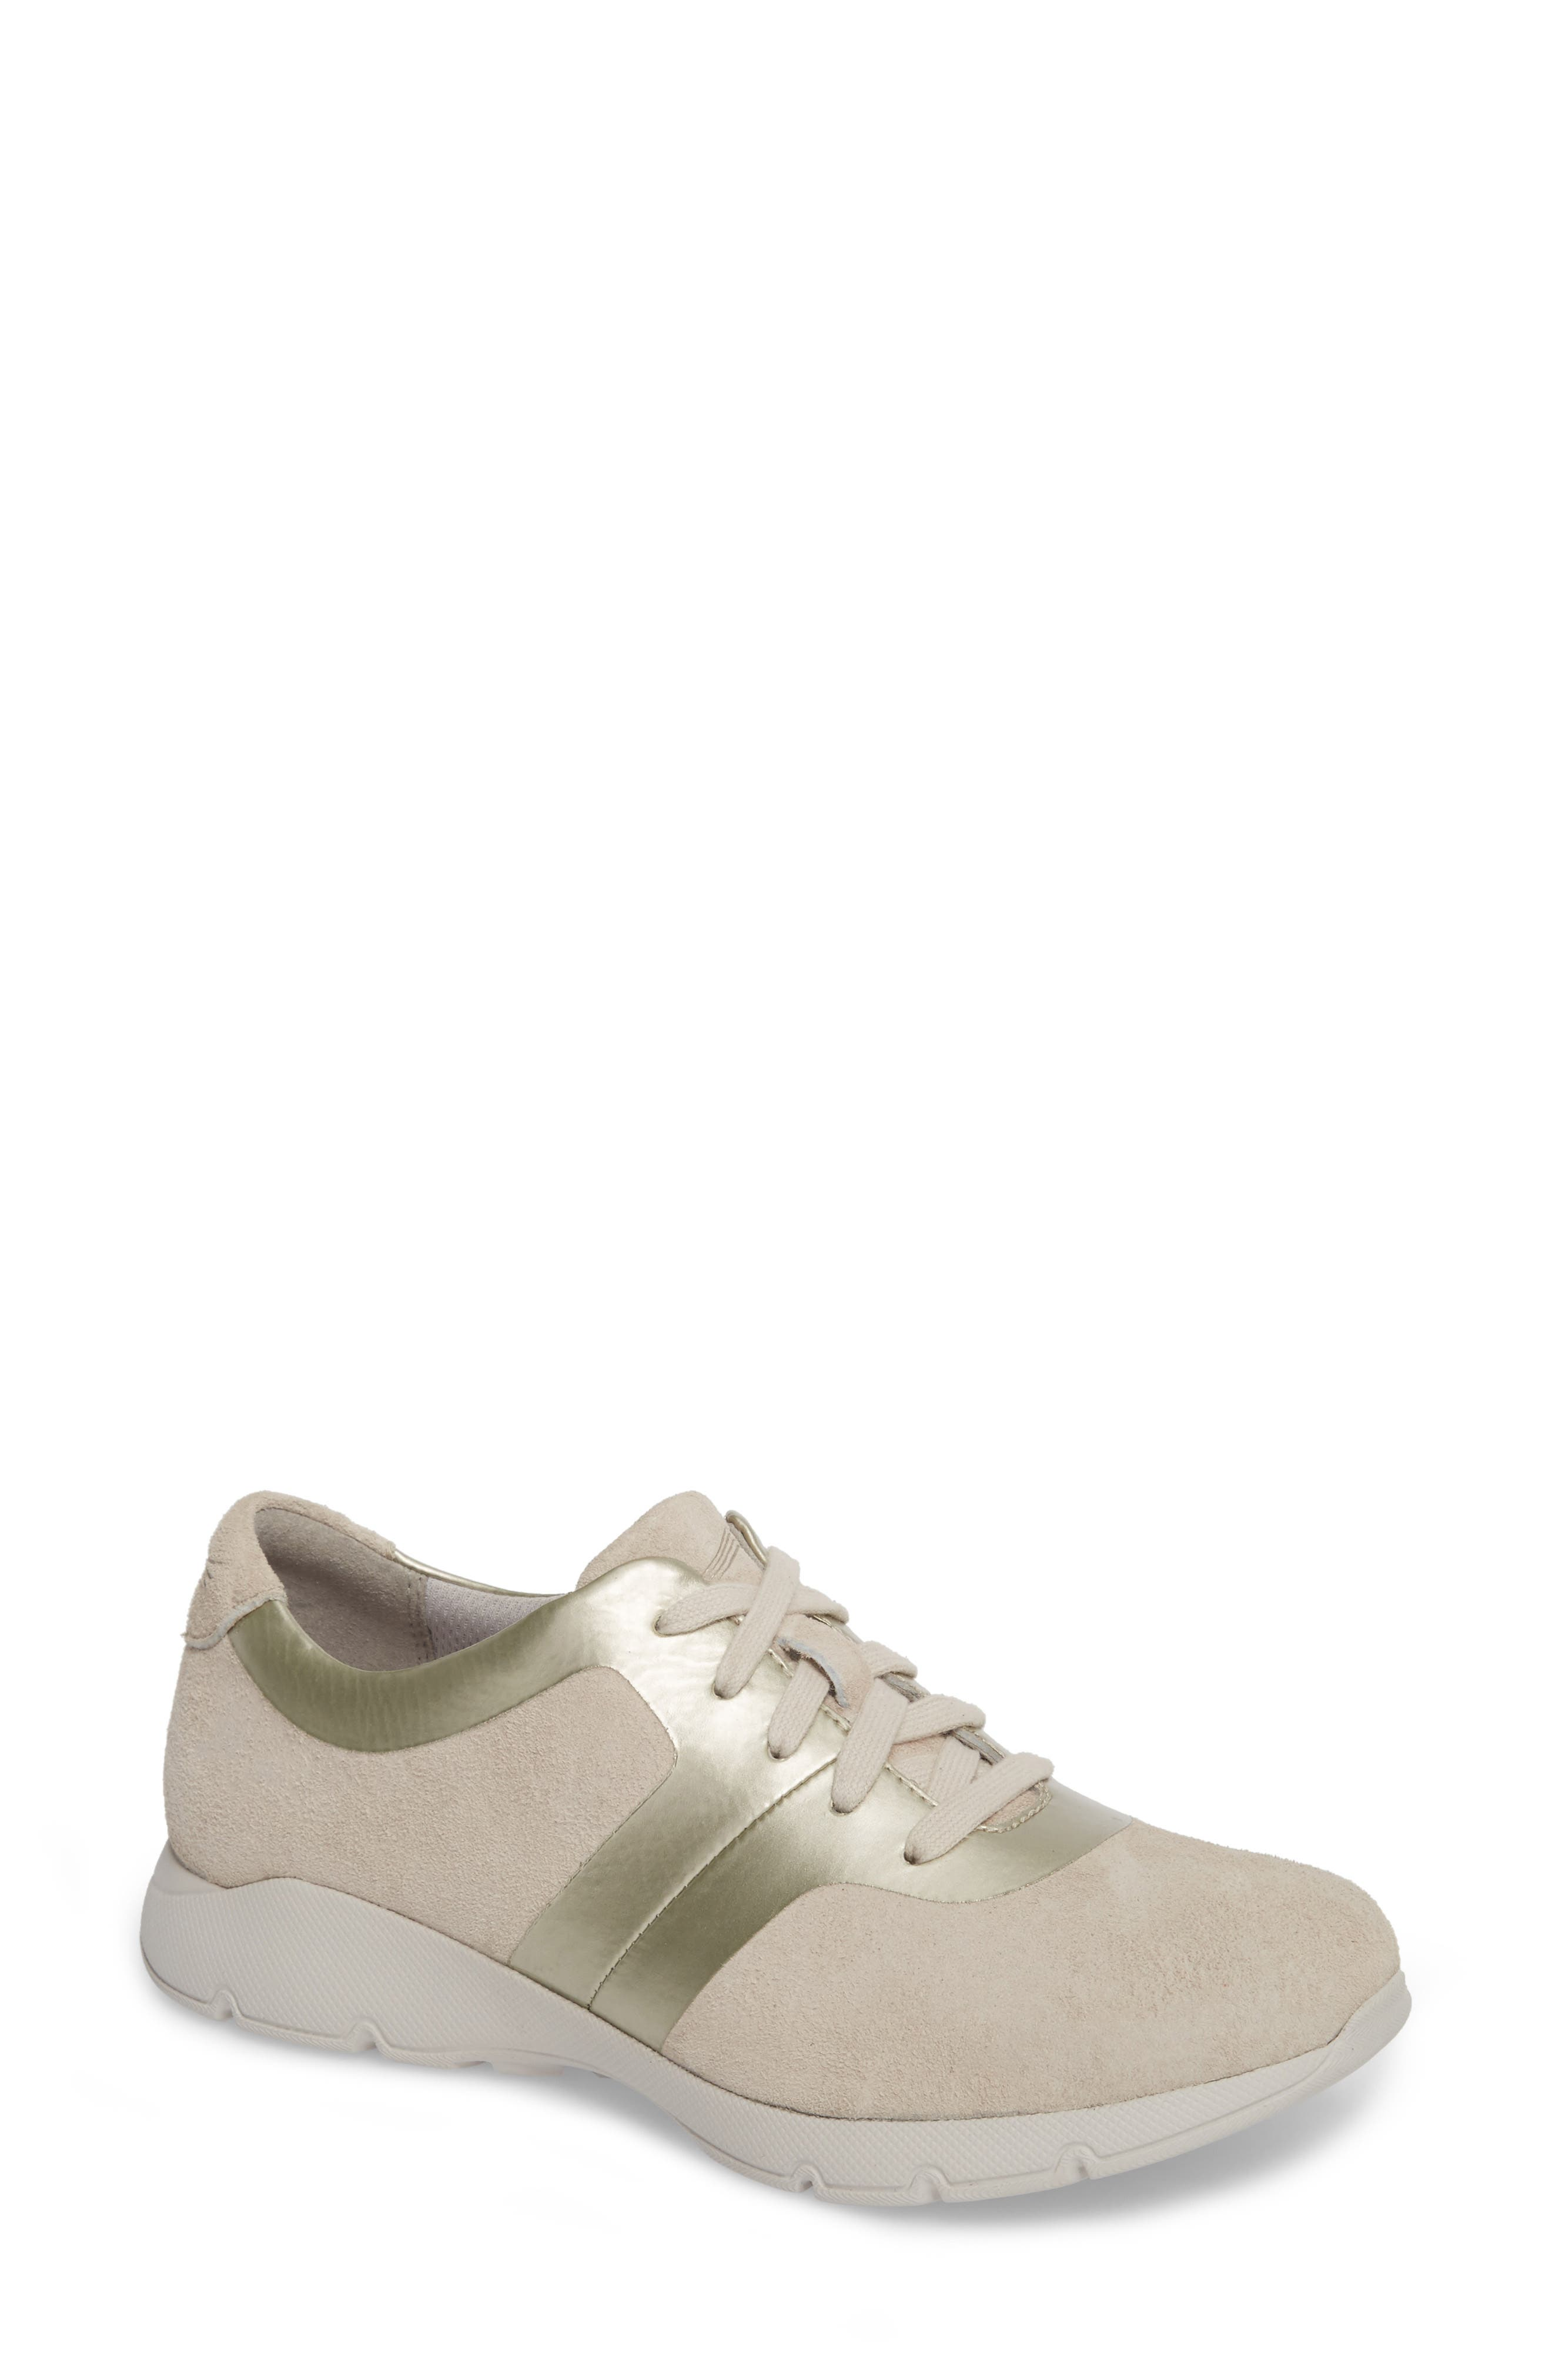 Andi Sneaker,                             Main thumbnail 1, color,                             Ivory Leather